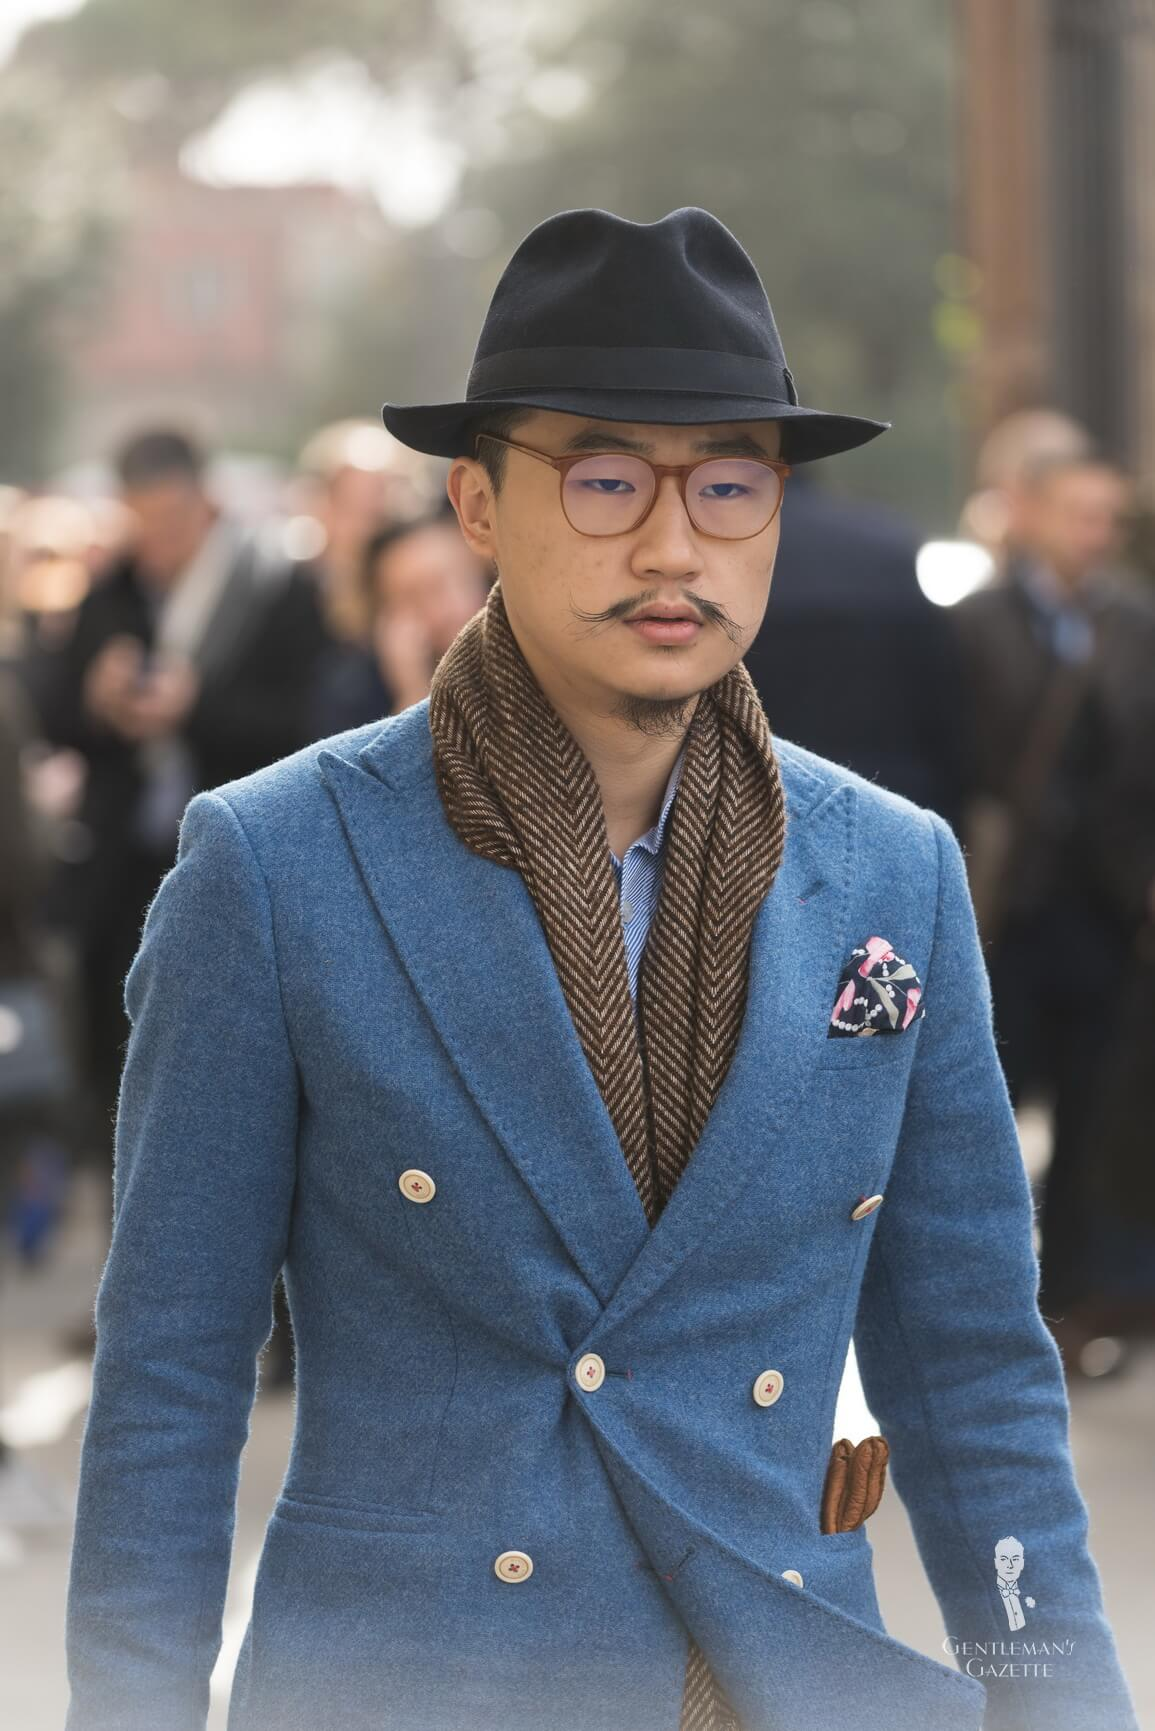 Light-Blue-Wool-Sprot-coat-with-contrast-buttons-in-6x2-DB-style-with-hat-brown-herringbone-scarf-and-blue-twill-shirt-with-peccary-gloves.jpg